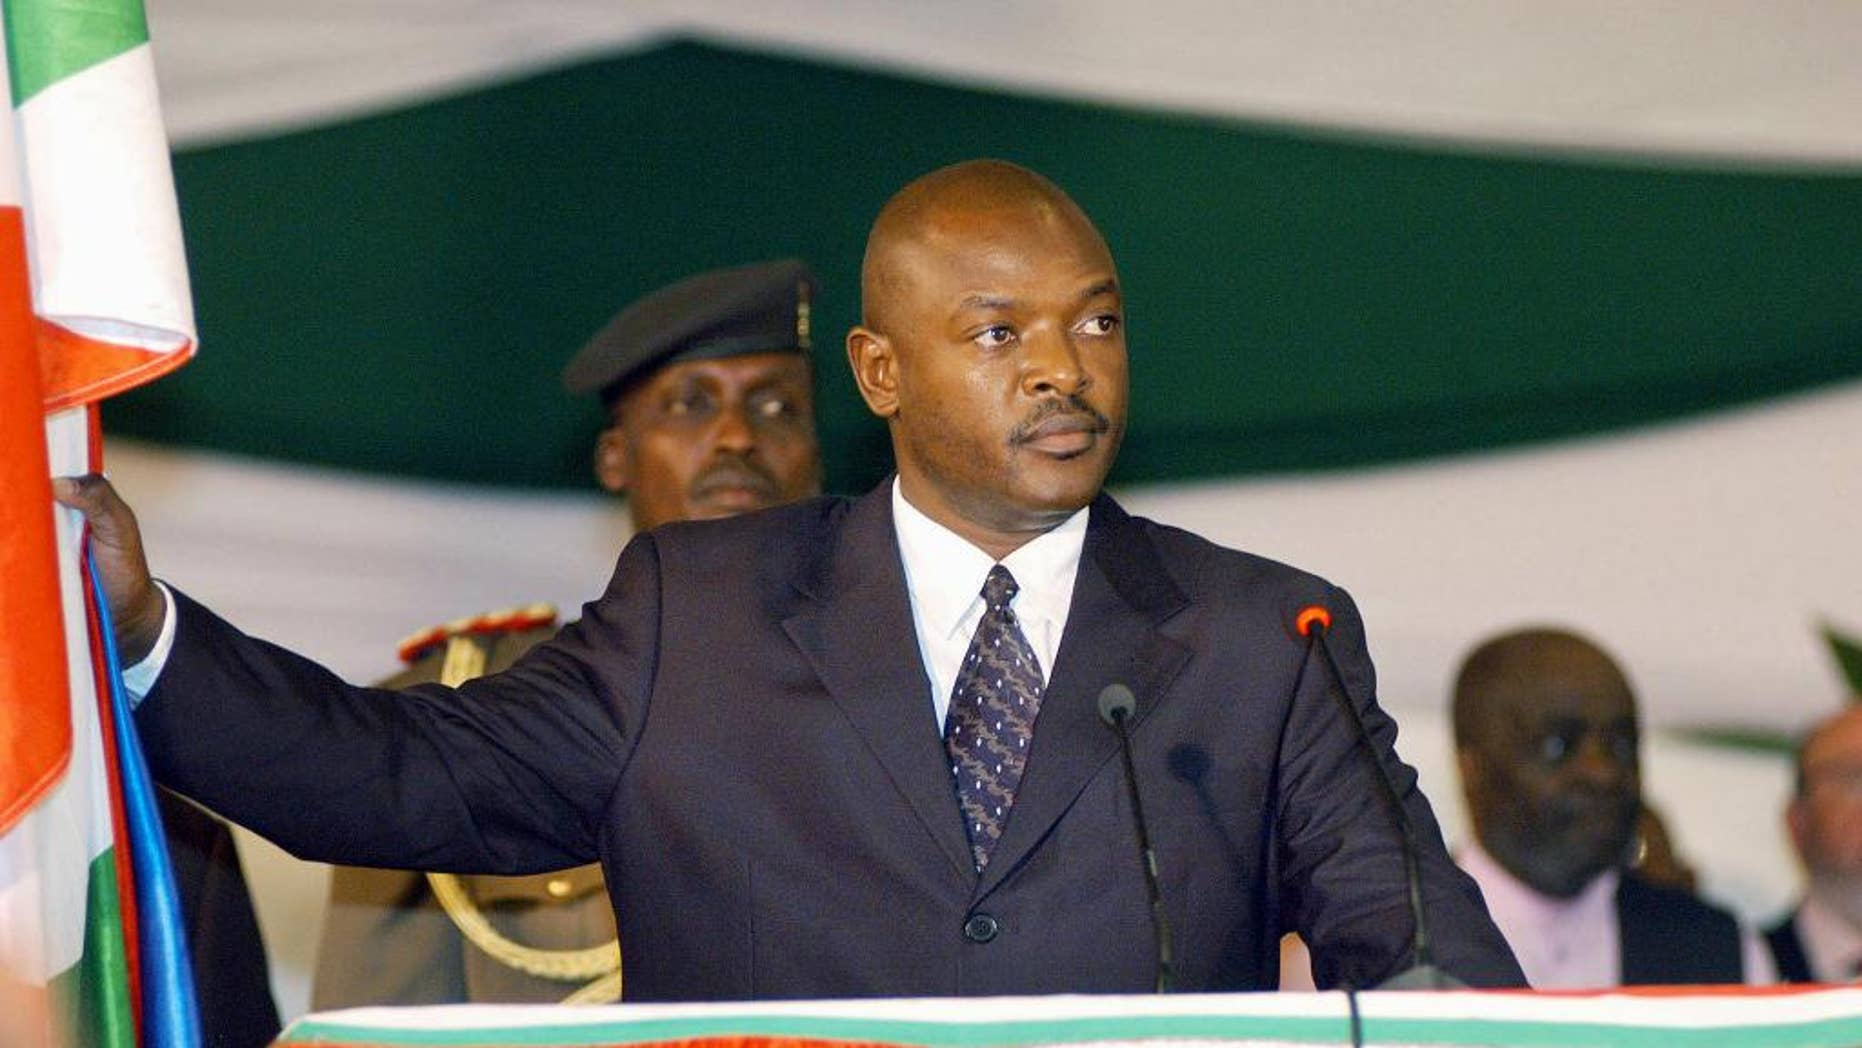 FILE - In this Aug. 26 2005 file photo, Burundi's president, Pierre Nkurunziza stands as he takes the presidential oath in parliament in the capital, Bujumbura, Burundi. Burundi's re-elected president is urging unity after winning contentious polls that the international community says were not credible. In a televised speech on Thursday, July 30, 2015, Pierre Nkurunziza said he would be a president for all, including those who did not vote for him. (AP Photo/Riccardo Gangale, File)